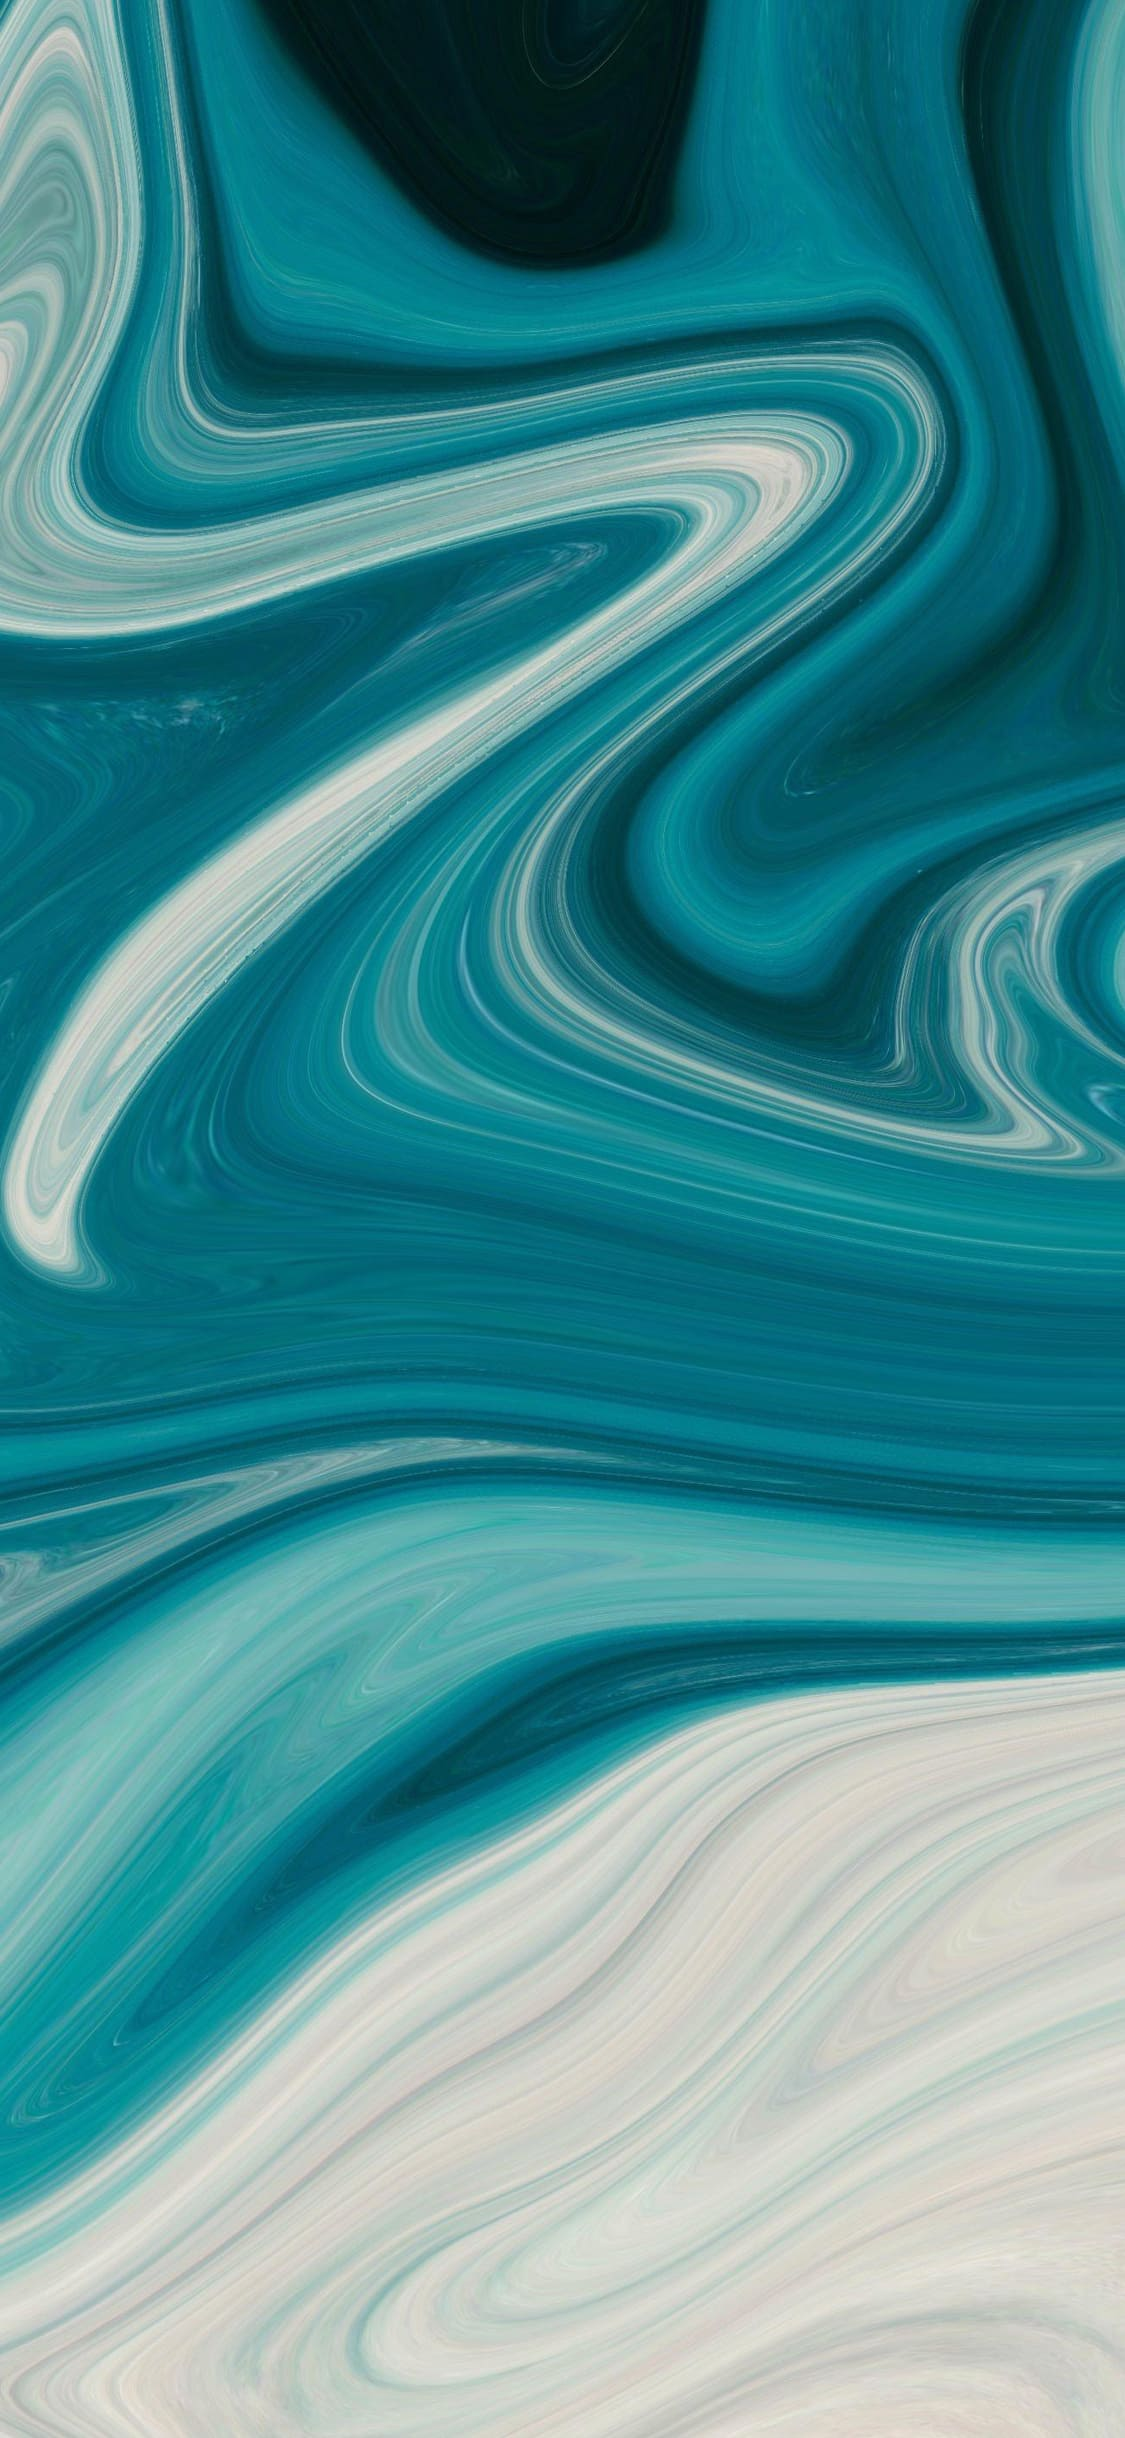 Download The New Default iOS 12 Wallpaper For iPhone, iPad ...